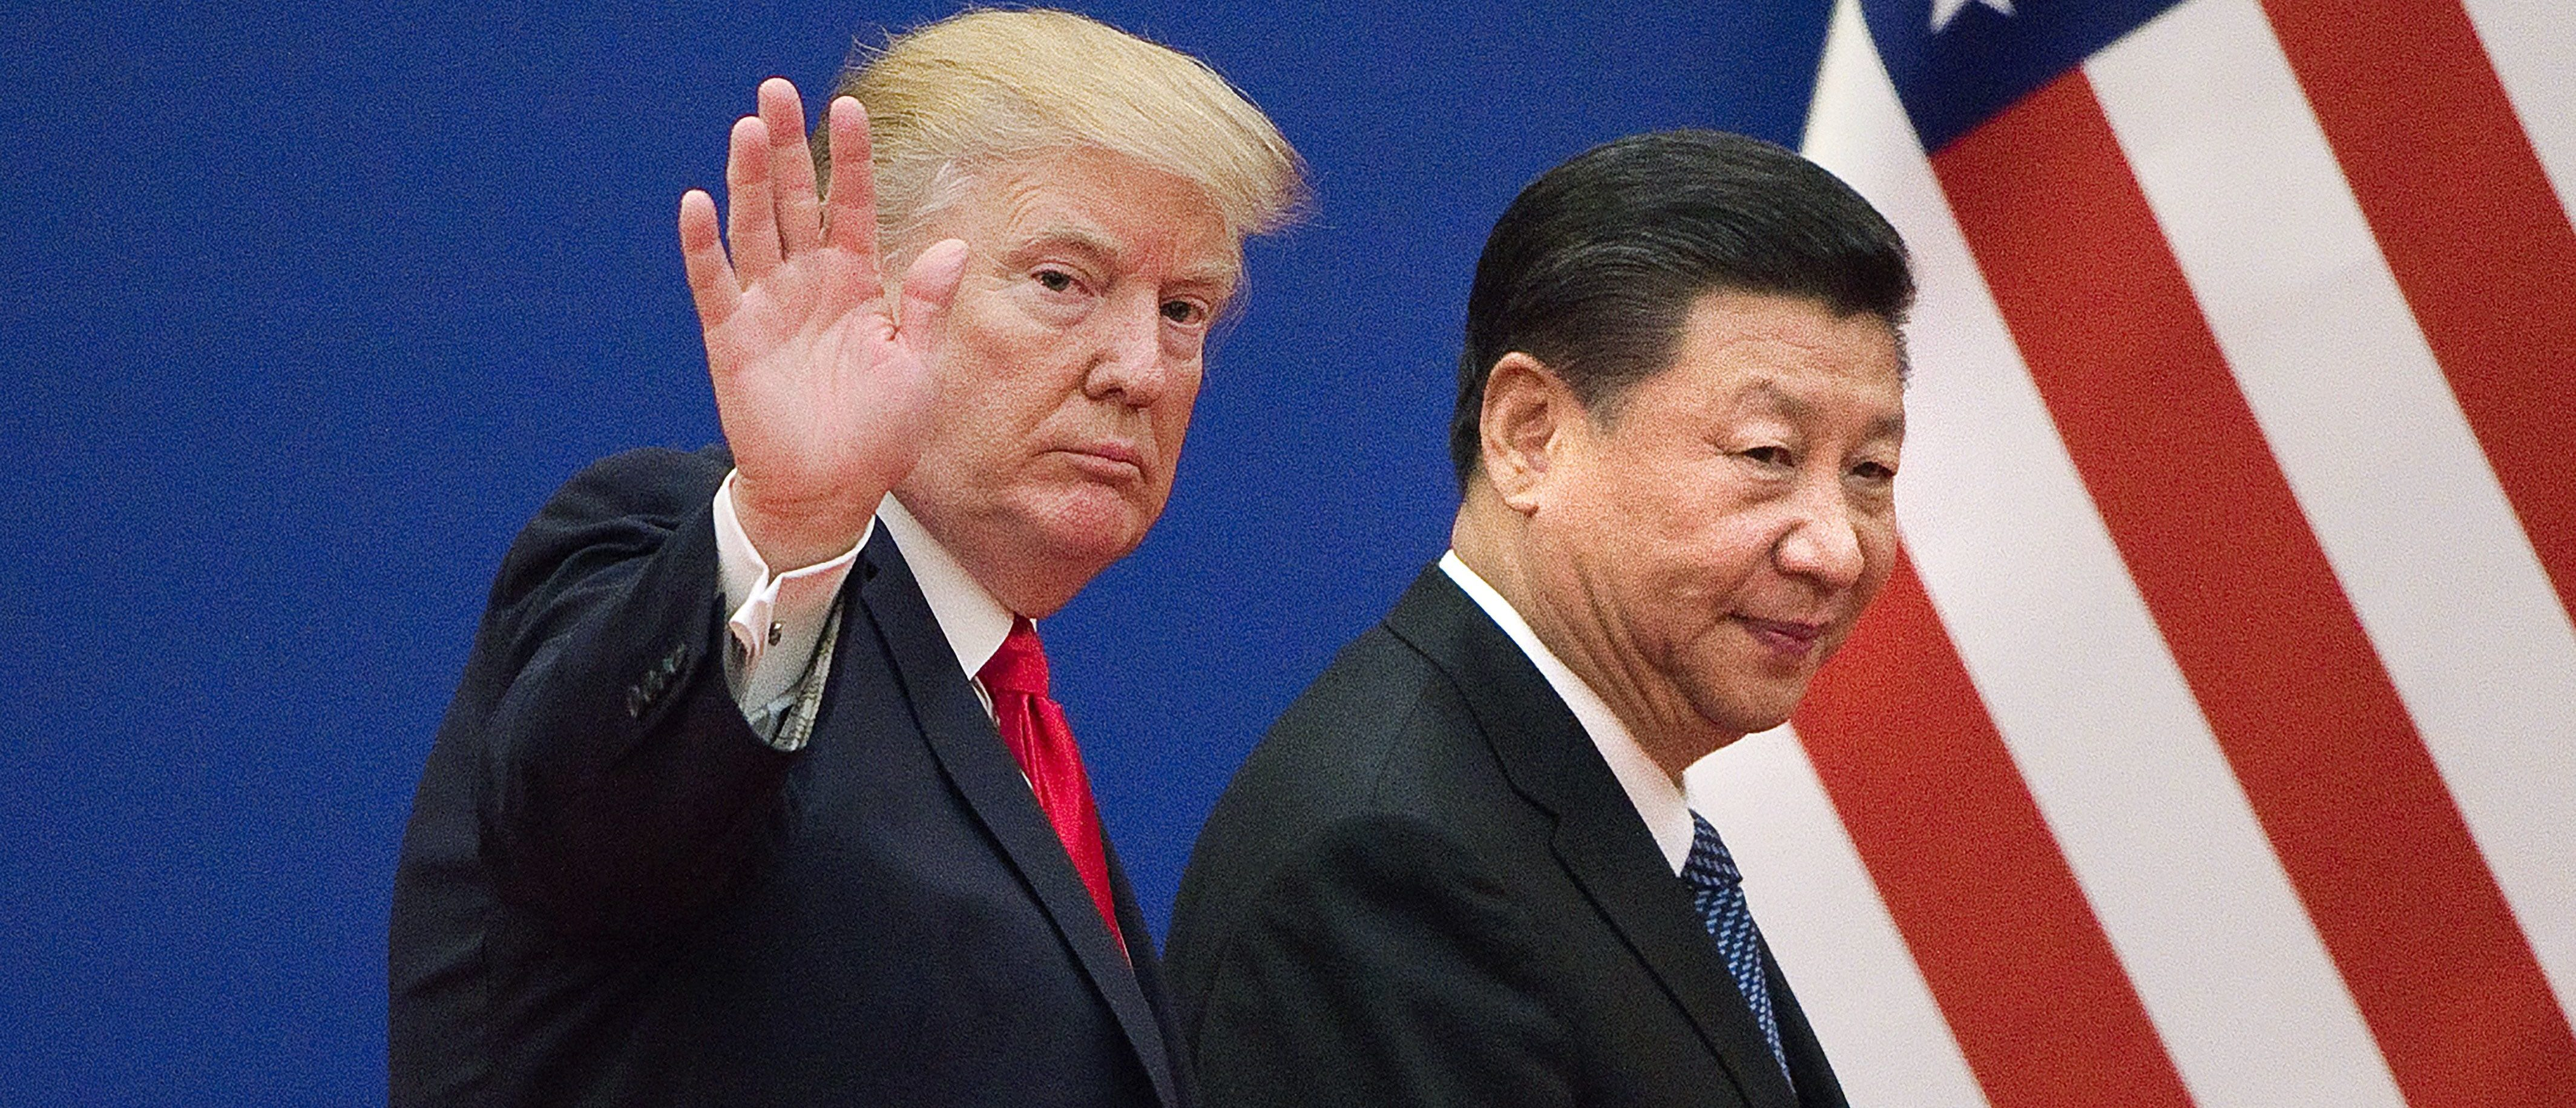 "US President Donald Trump (L) and China's President Xi Jinping leave a business leaders event at the Great Hall of the People in Beijing on November 9, 2017. Donald Trump urged Chinese leader Xi Jinping to work ""hard"" and act fast to help resolve the North Korean nuclear crisis, during their meeting in Beijing on November 9, warning that ""time is quickly running out"". / AFP PHOTO / Nicolas ASFOURI (Photo credit should read NICOLAS ASFOURI/AFP/Getty Images)"